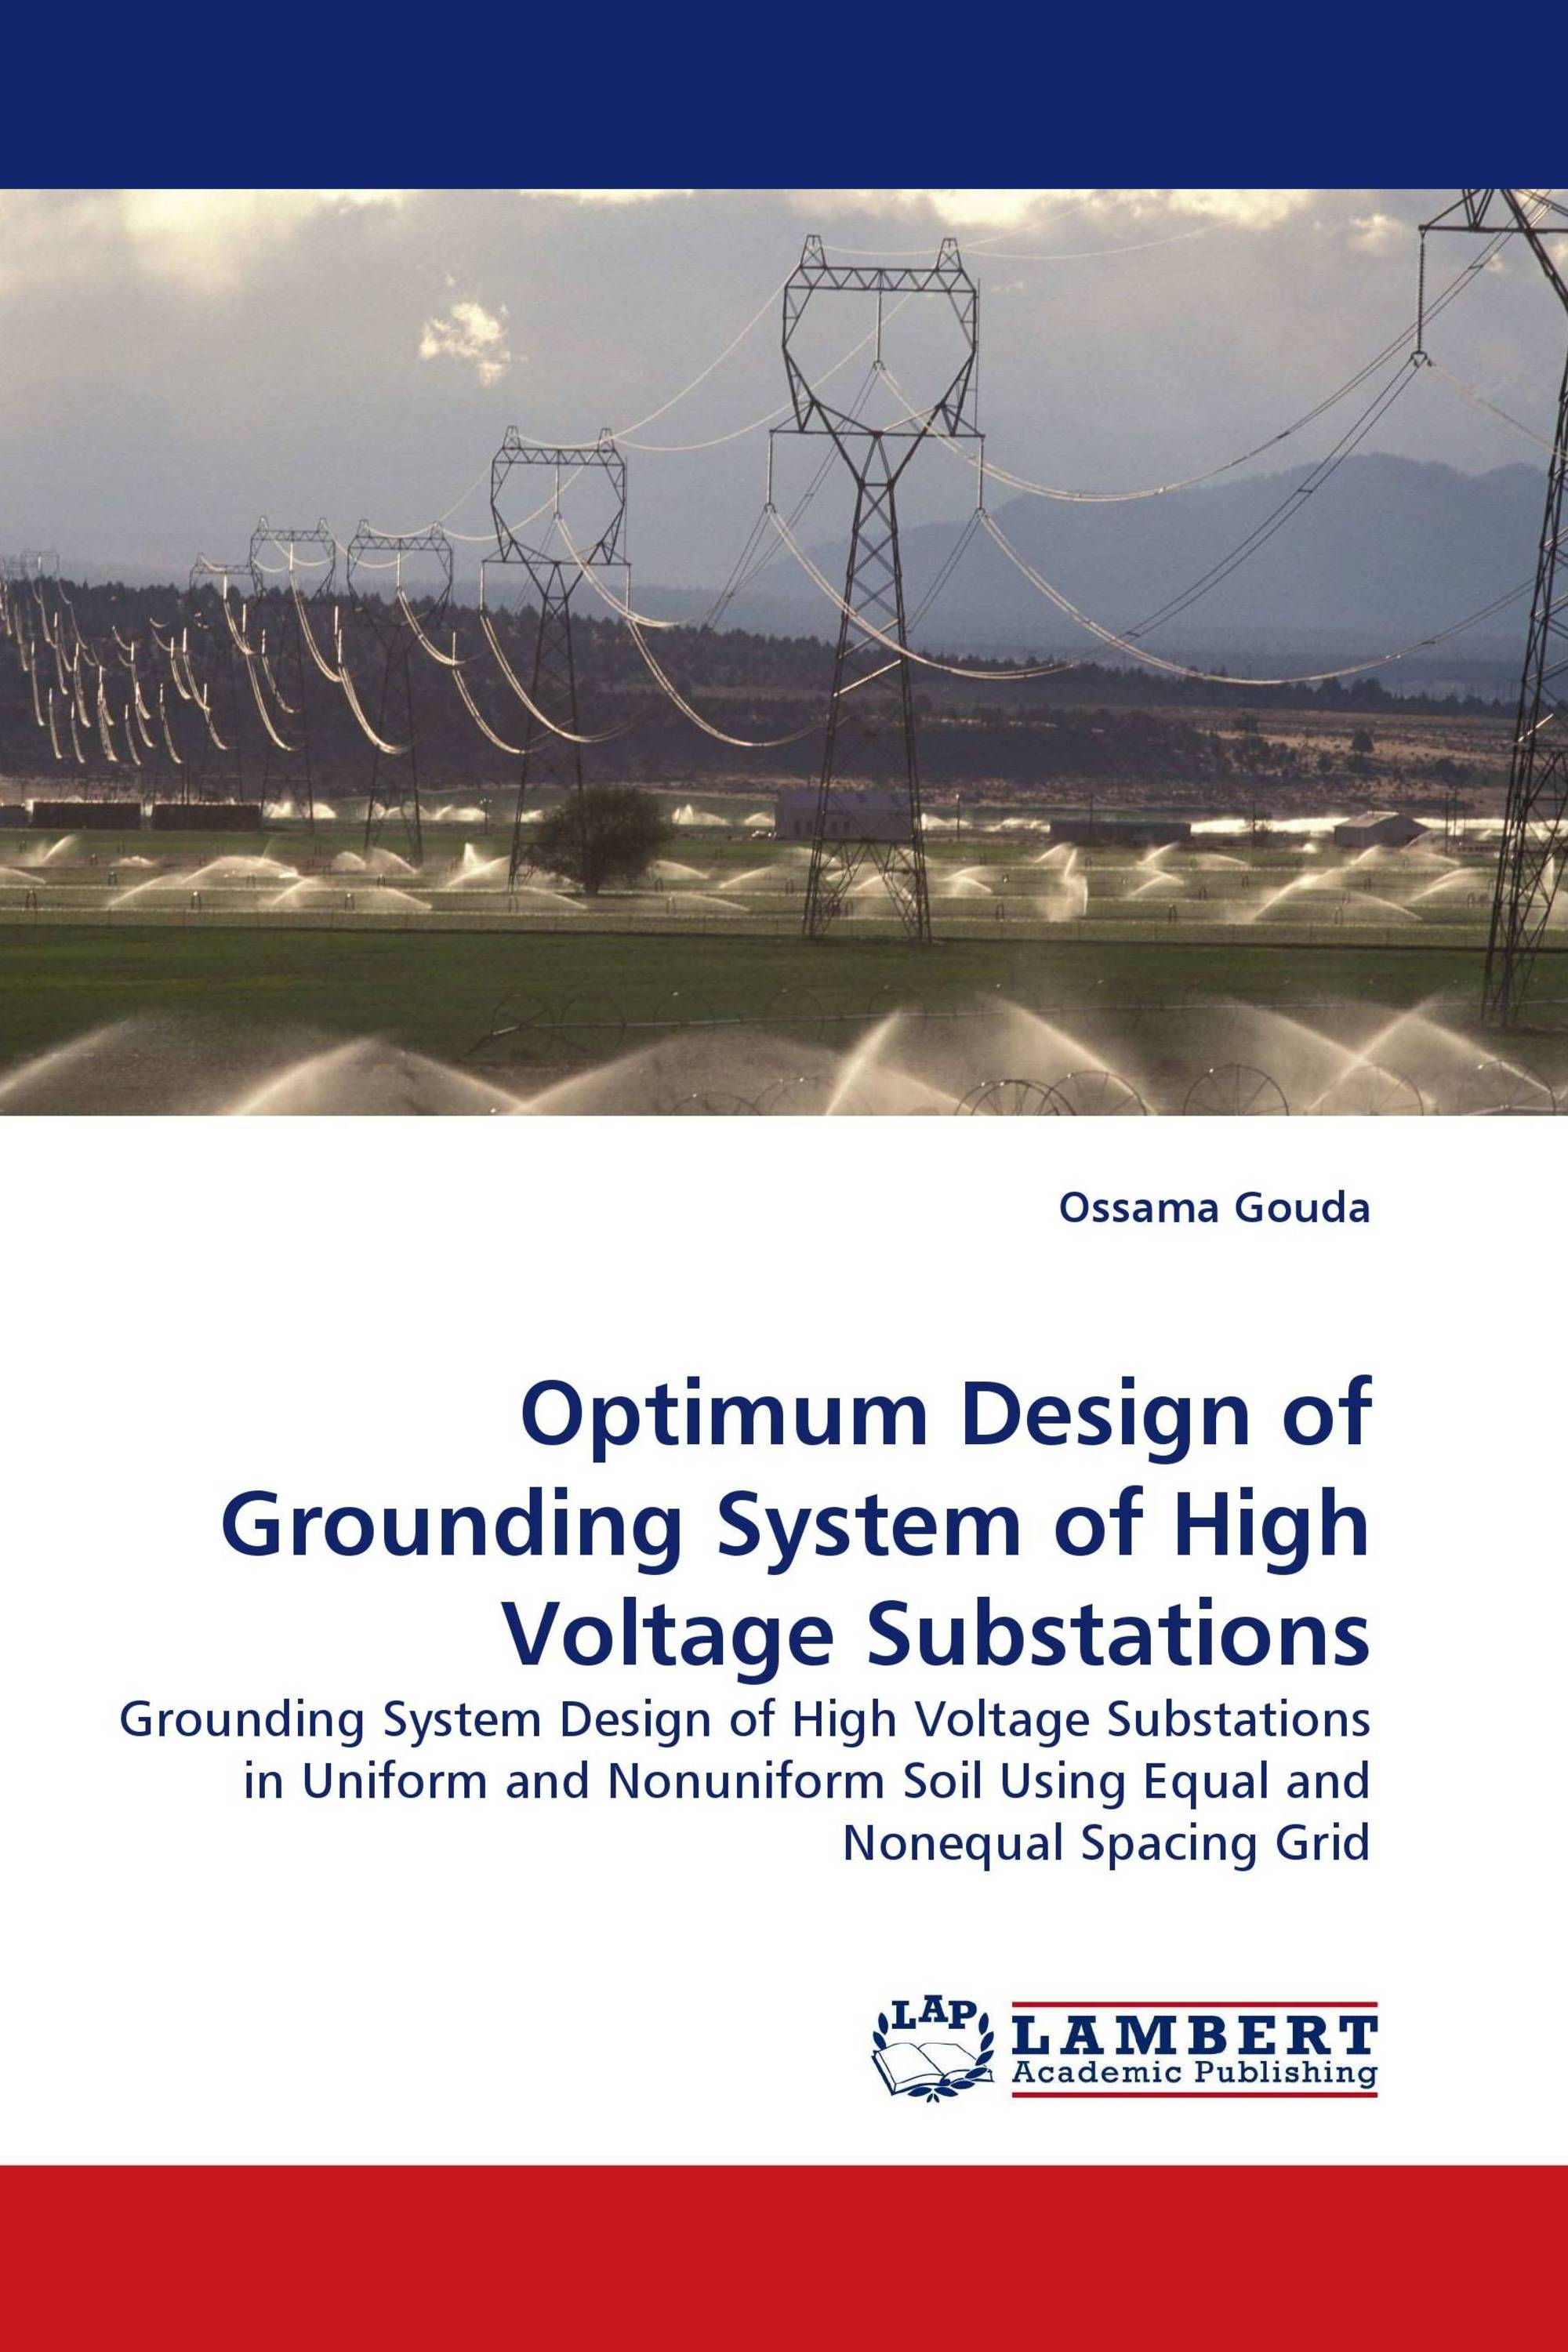 Optimum Design of Grounding System of High Voltage Substations